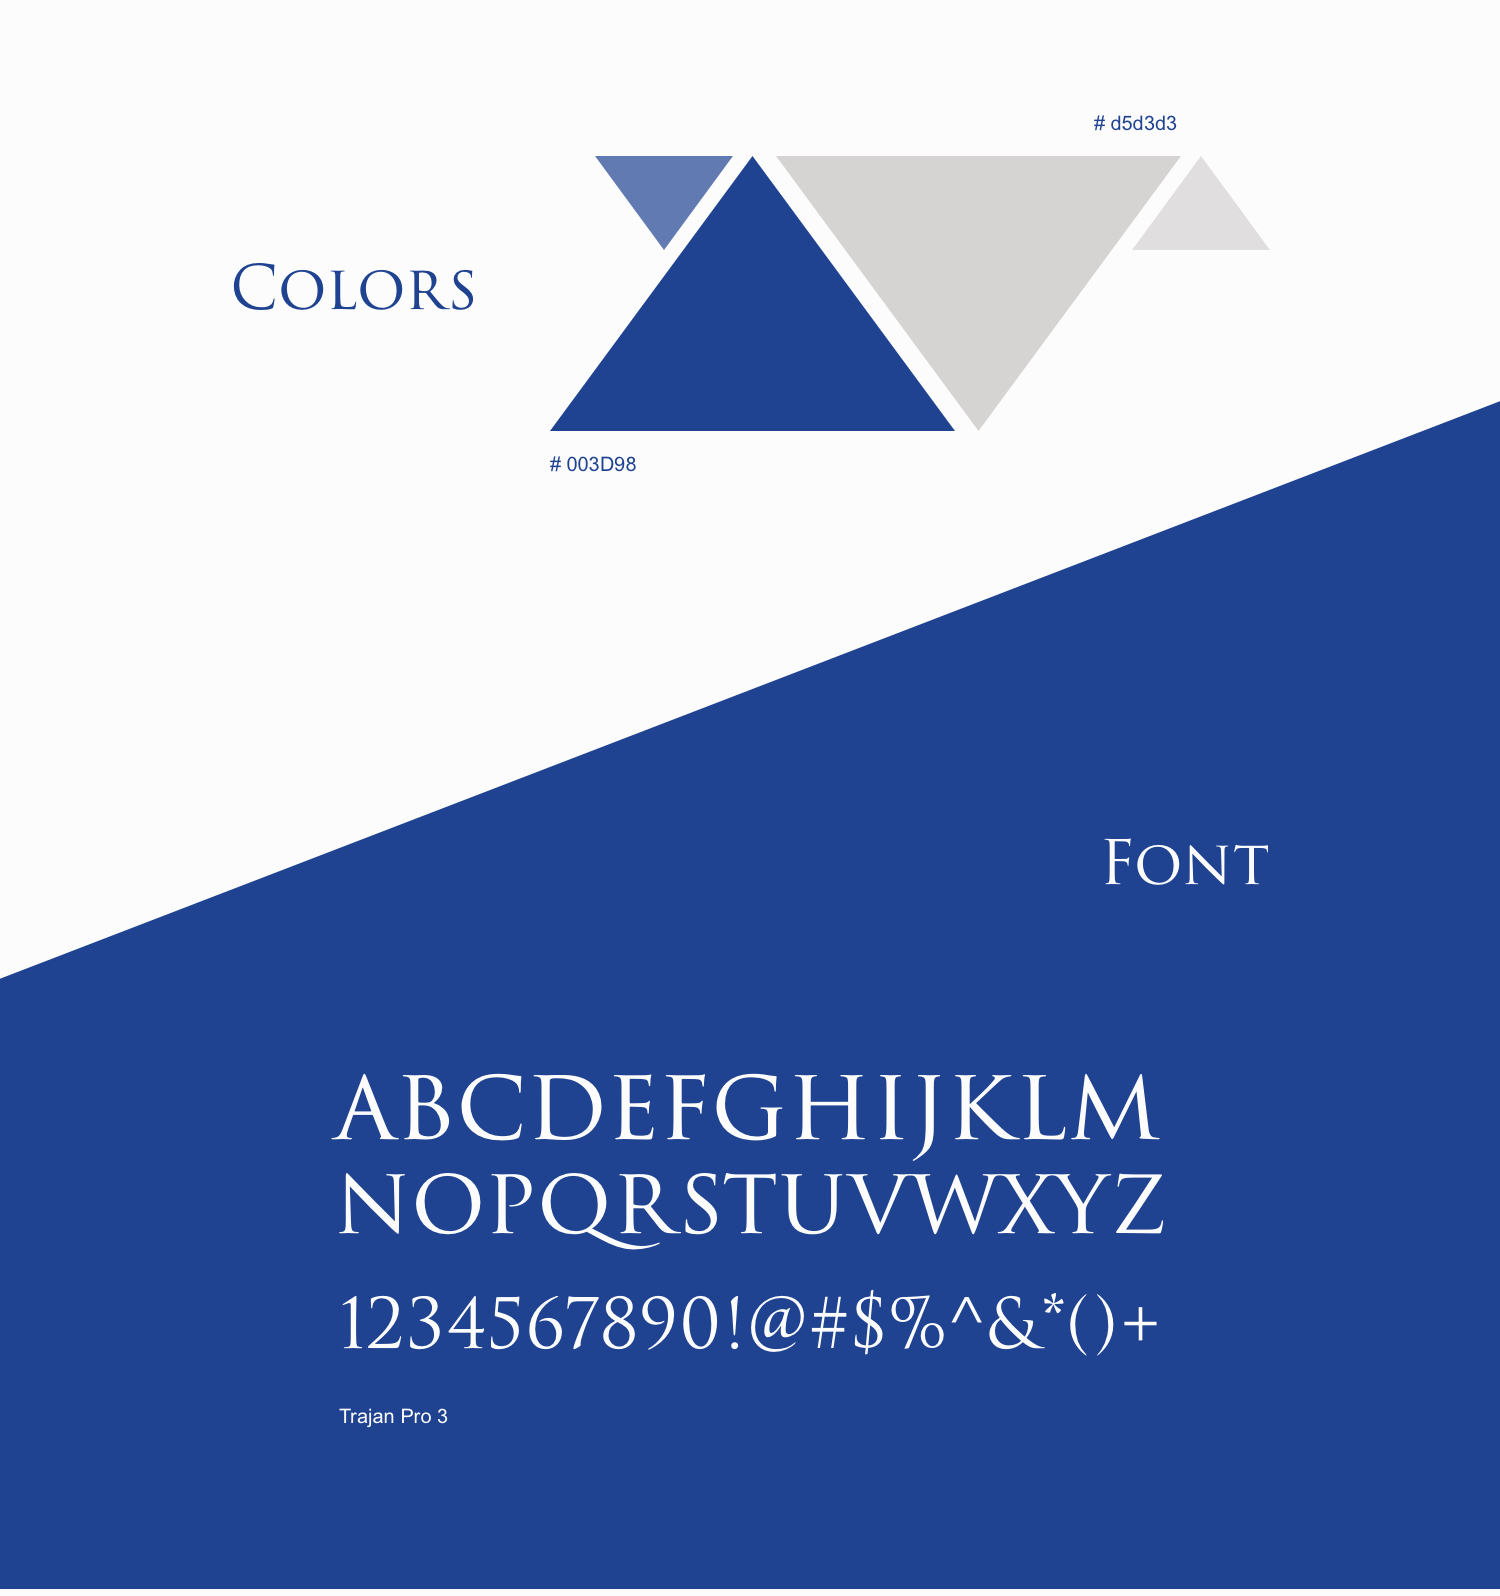 Colors and Font